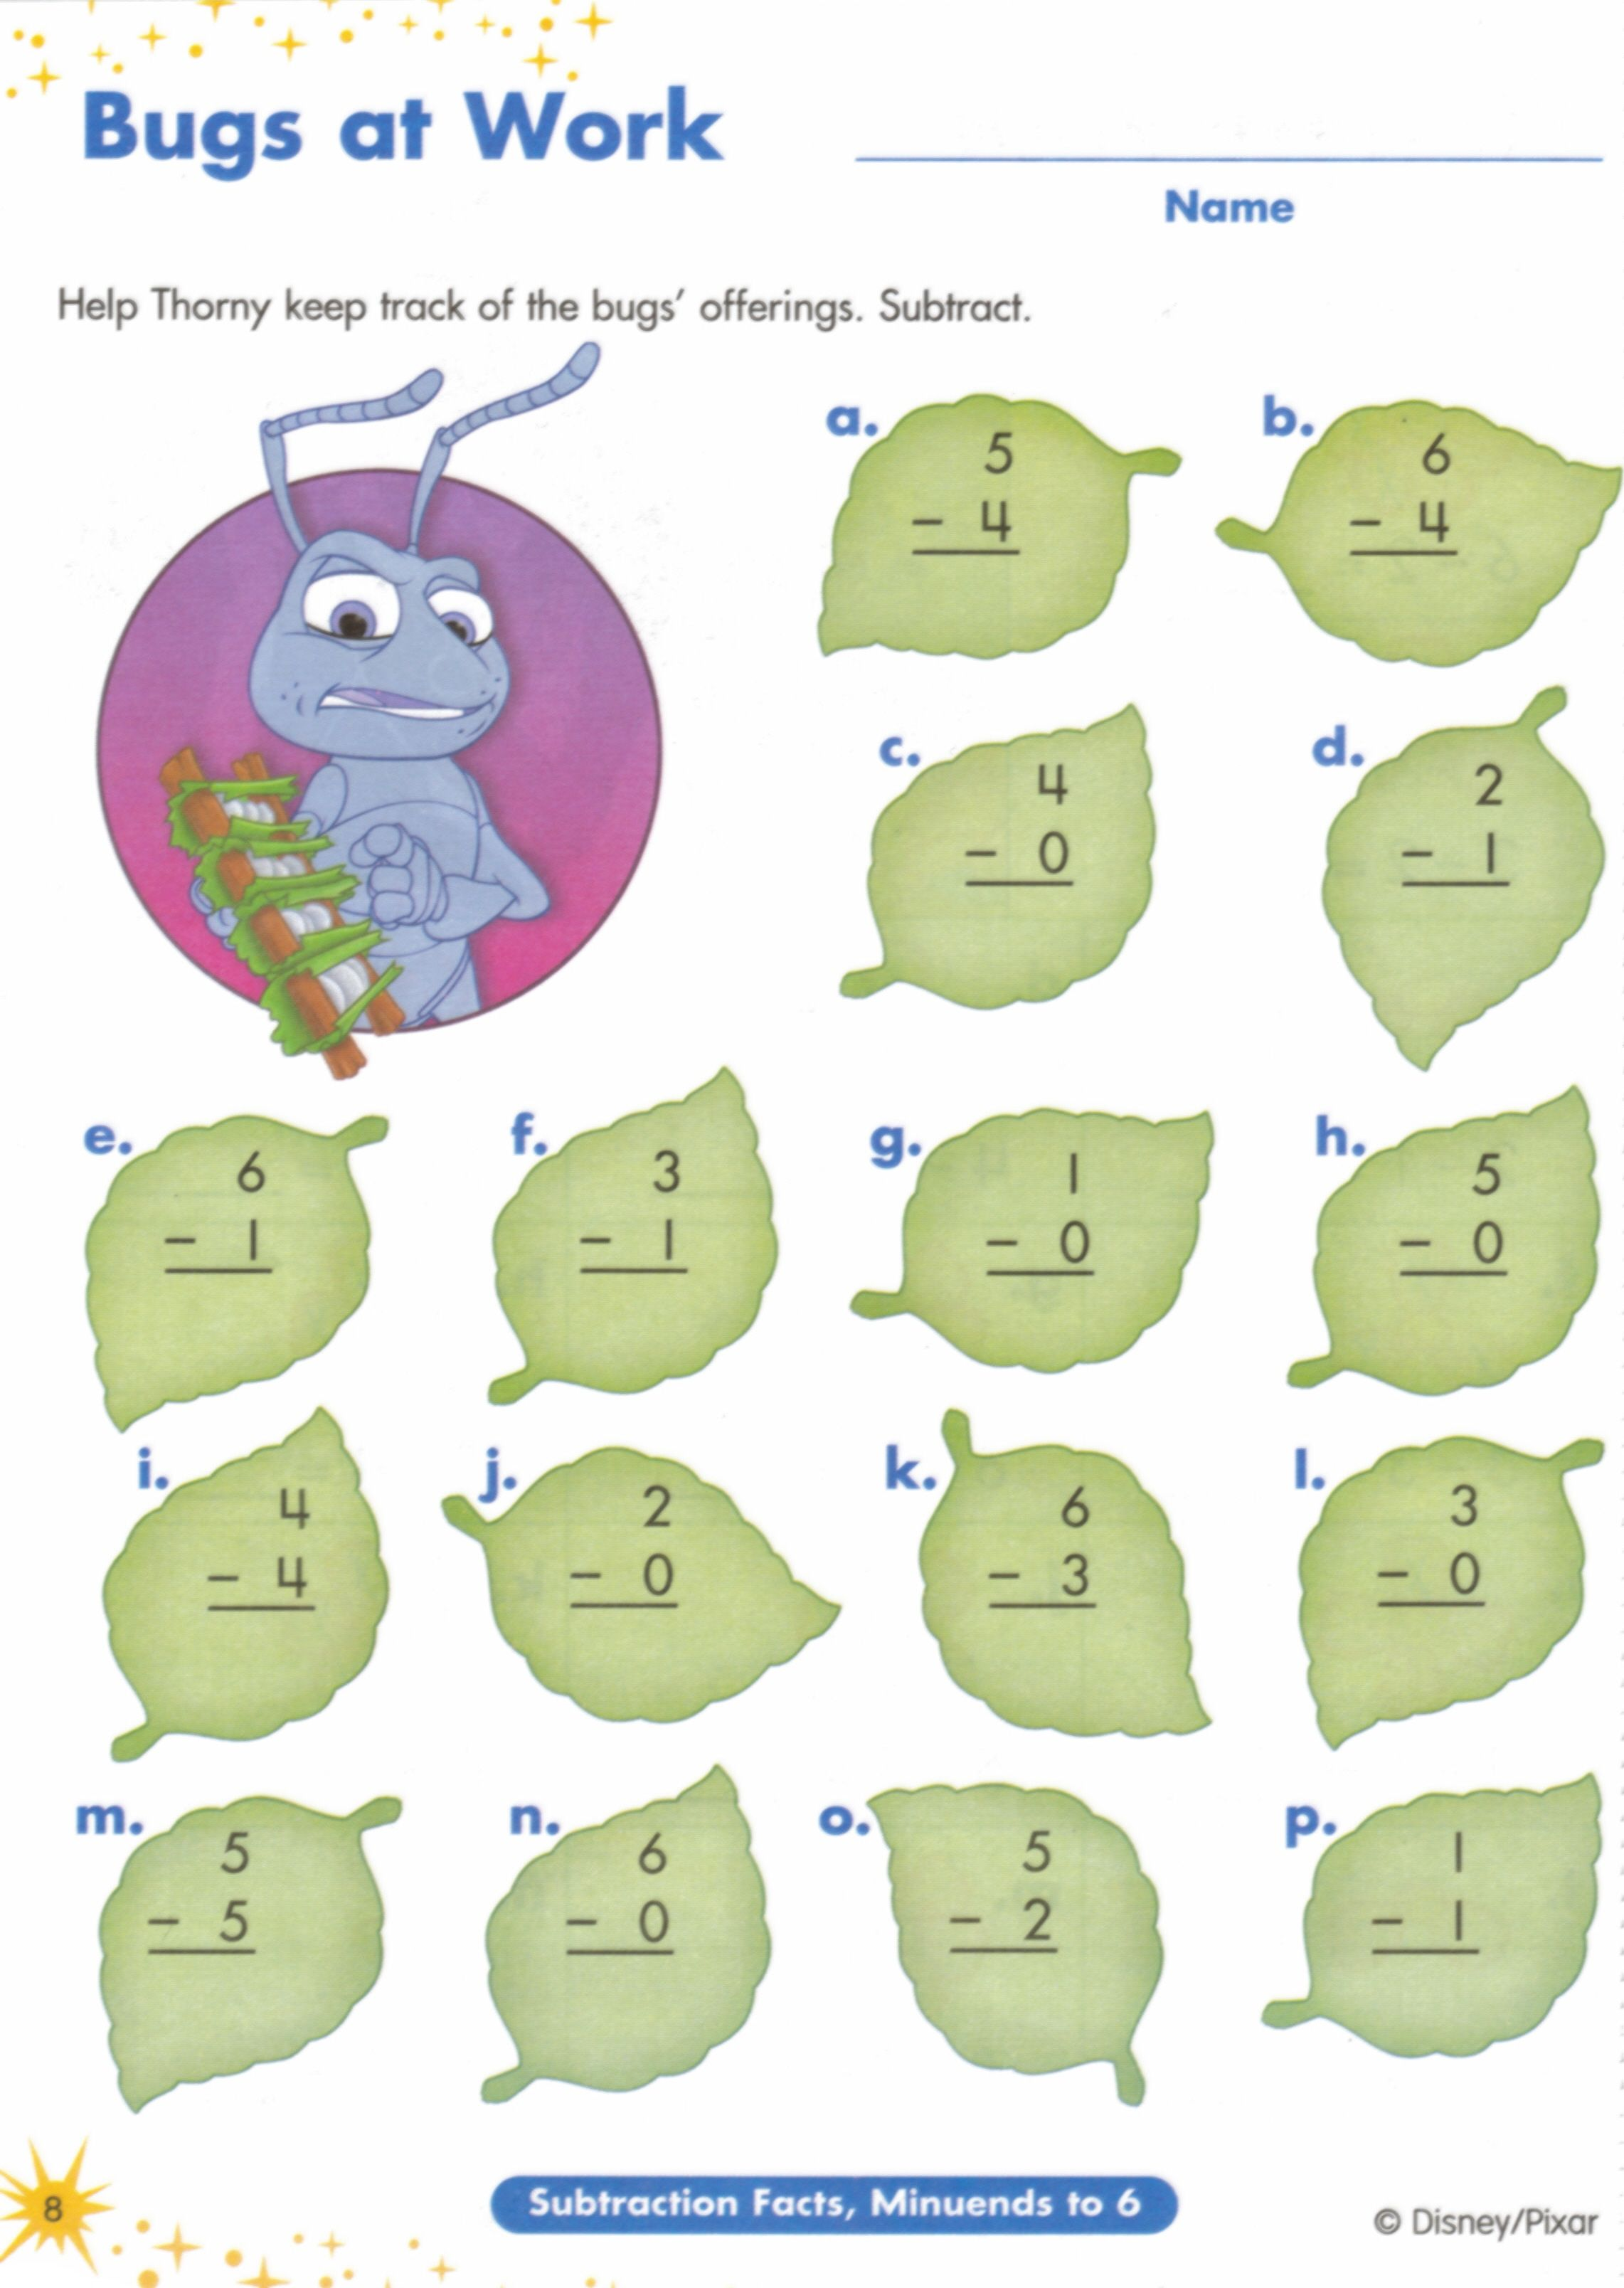 Aldiablosus  Winning  Images About Worksheets On Pinterest  Fun Facts For Kids  With Exciting  Images About Worksheets On Pinterest  Fun Facts For Kids Earth Day Worksheets And Jungles With Cute Function Notation Worksheet Also Number Line Worksheets In Addition Solving Systems Of Equations By Substitution Worksheet And Measuring Angles Worksheet As Well As Itemized Deductions Worksheet Additionally Graphing Quadratic Functions Worksheet From Pinterestcom With Aldiablosus  Exciting  Images About Worksheets On Pinterest  Fun Facts For Kids  With Cute  Images About Worksheets On Pinterest  Fun Facts For Kids Earth Day Worksheets And Jungles And Winning Function Notation Worksheet Also Number Line Worksheets In Addition Solving Systems Of Equations By Substitution Worksheet From Pinterestcom